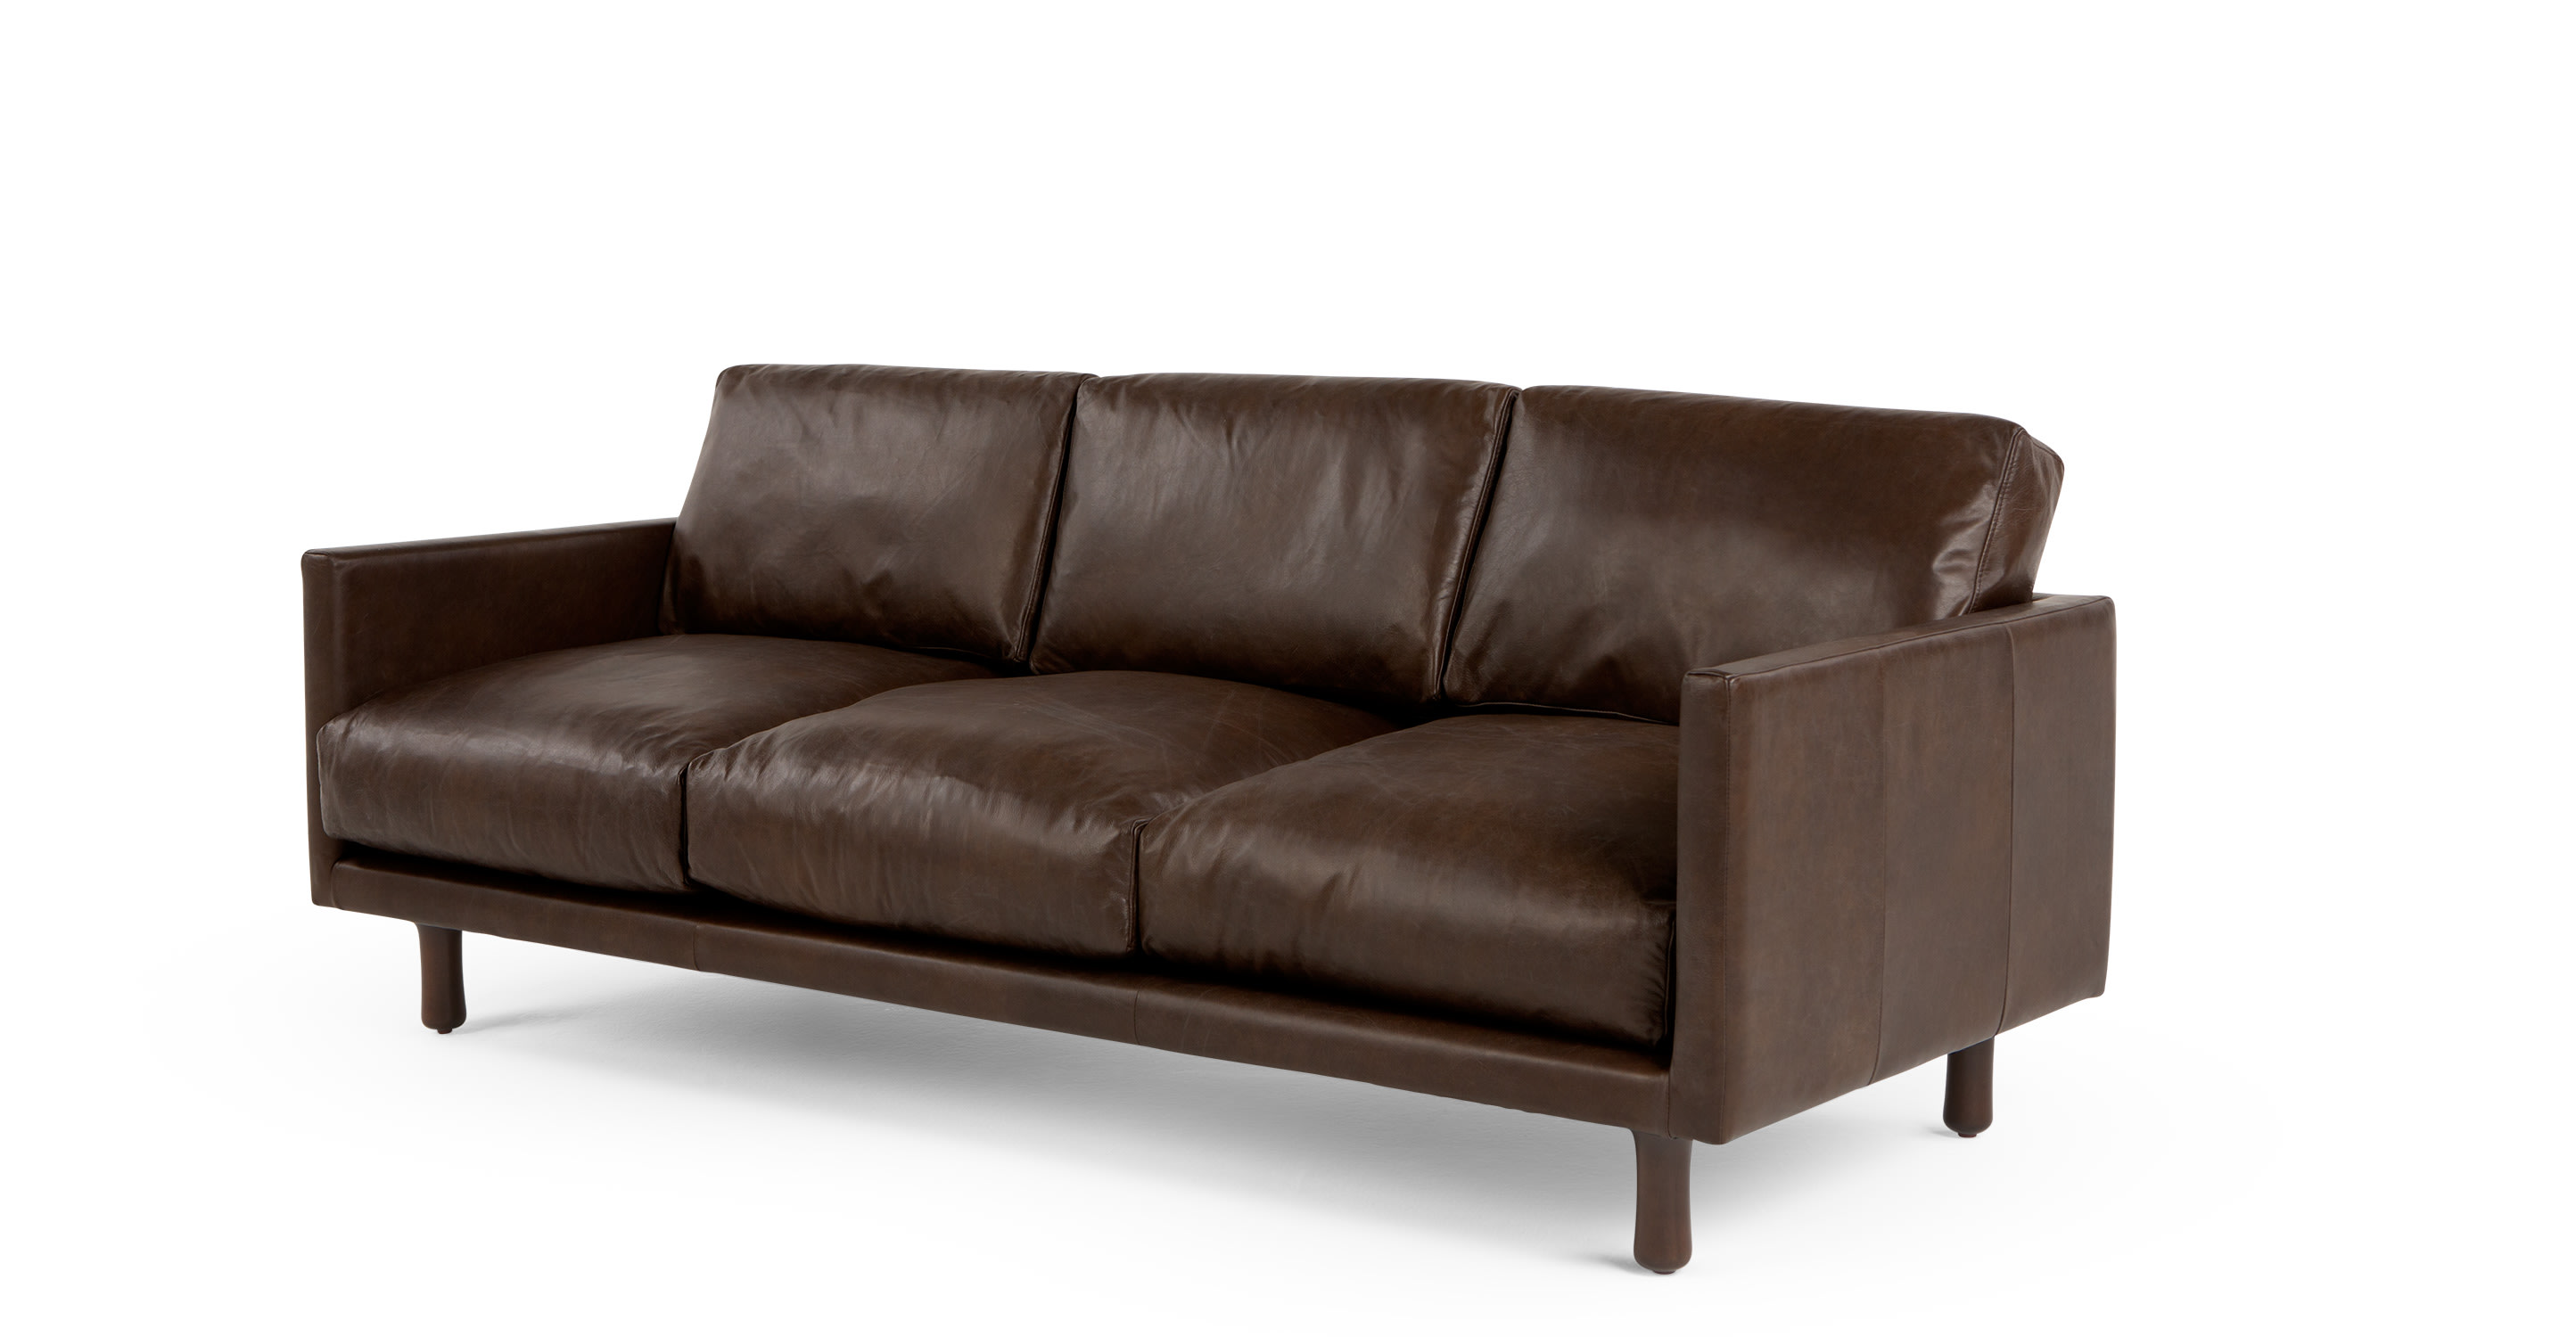 Carey 3 Seater Sofa Vintage Brown Premium Leather